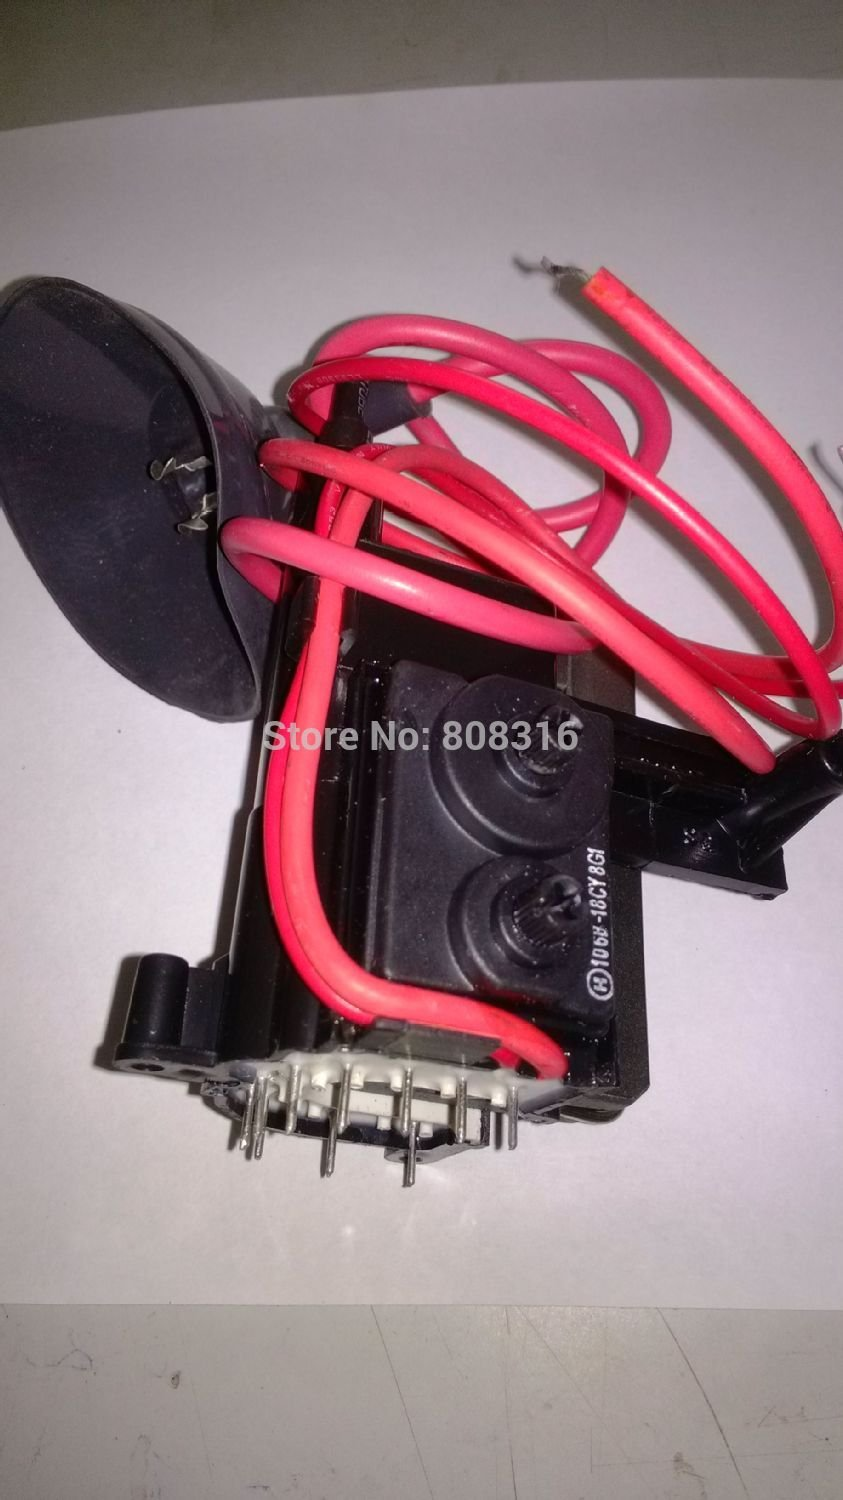 BSC25-N0101F flyback transformer for CRT television